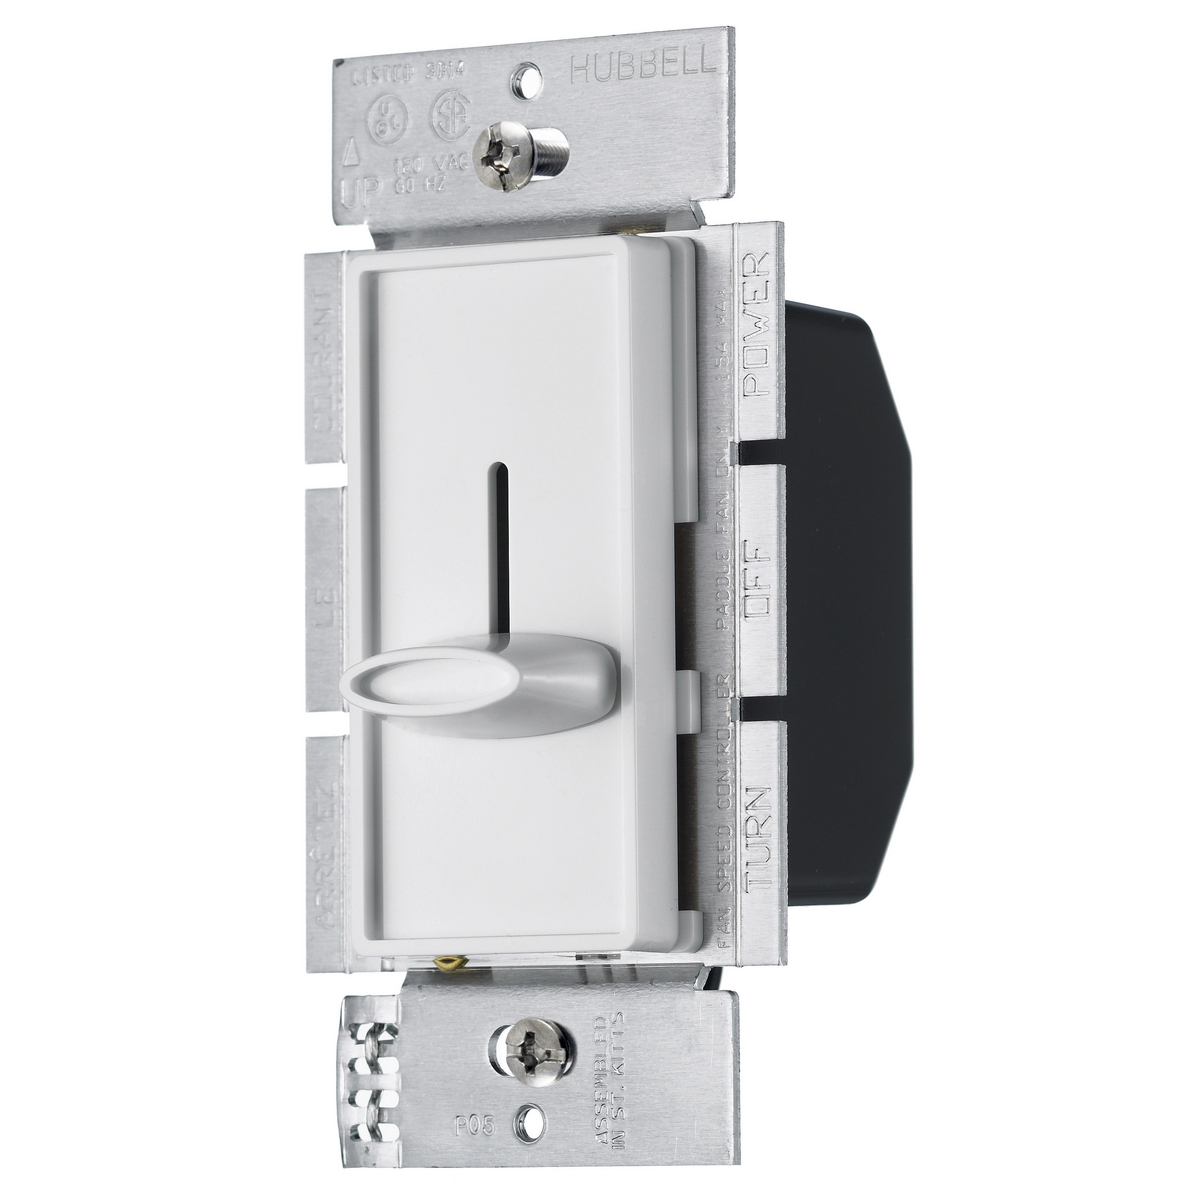 rsfsqfw dimmers fan speed controls residential devices rh hubbell com Hubbell Wiring Devices Marine 220 Volt Hubbell Wiring Devices